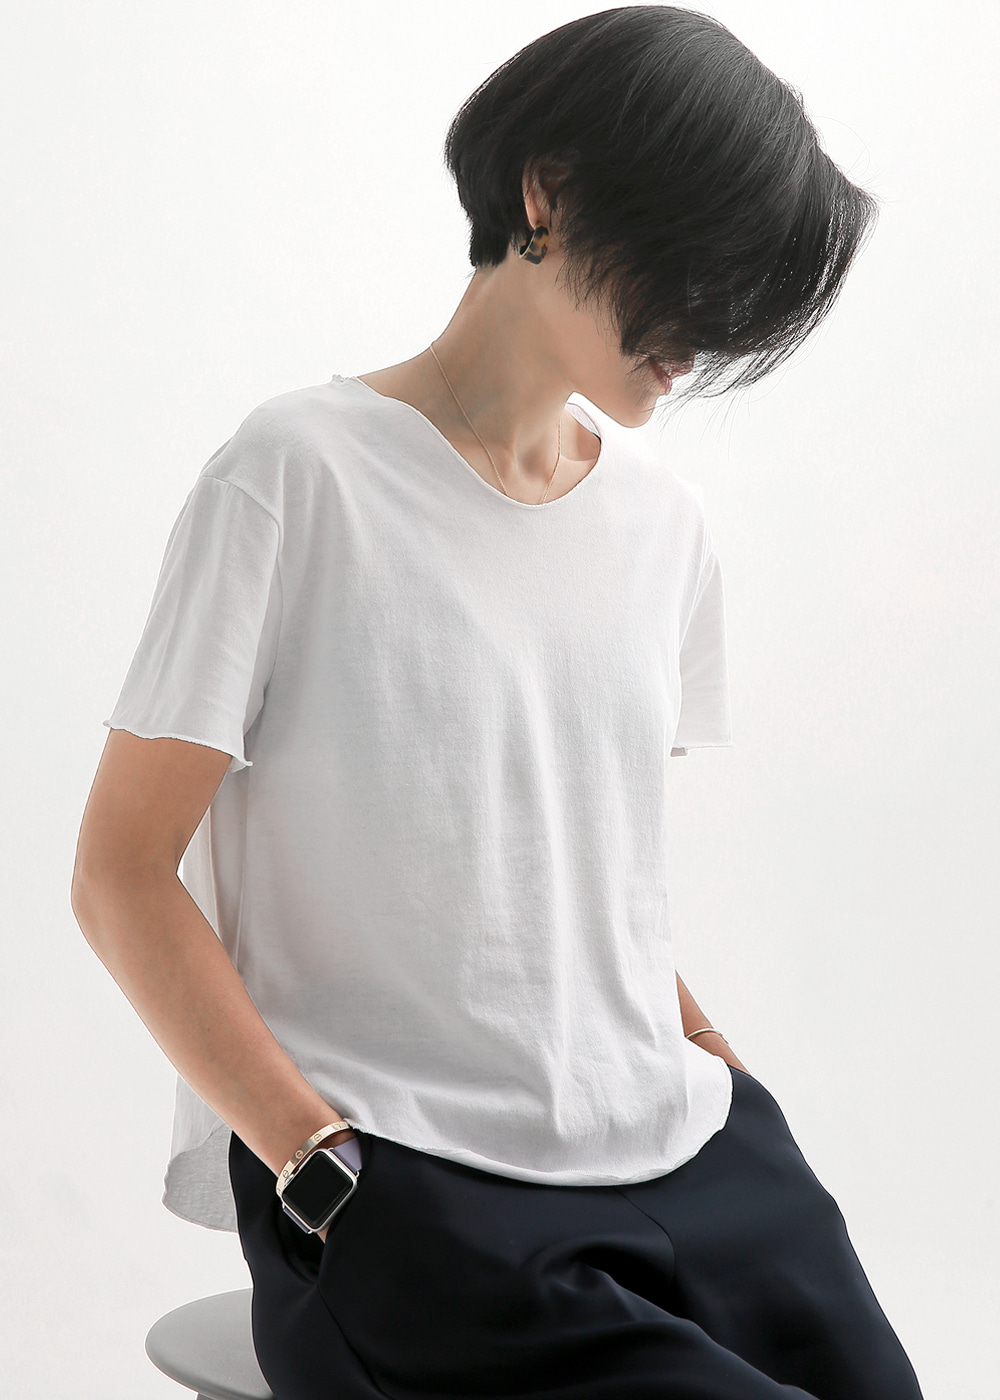 One Top Tee White/Black